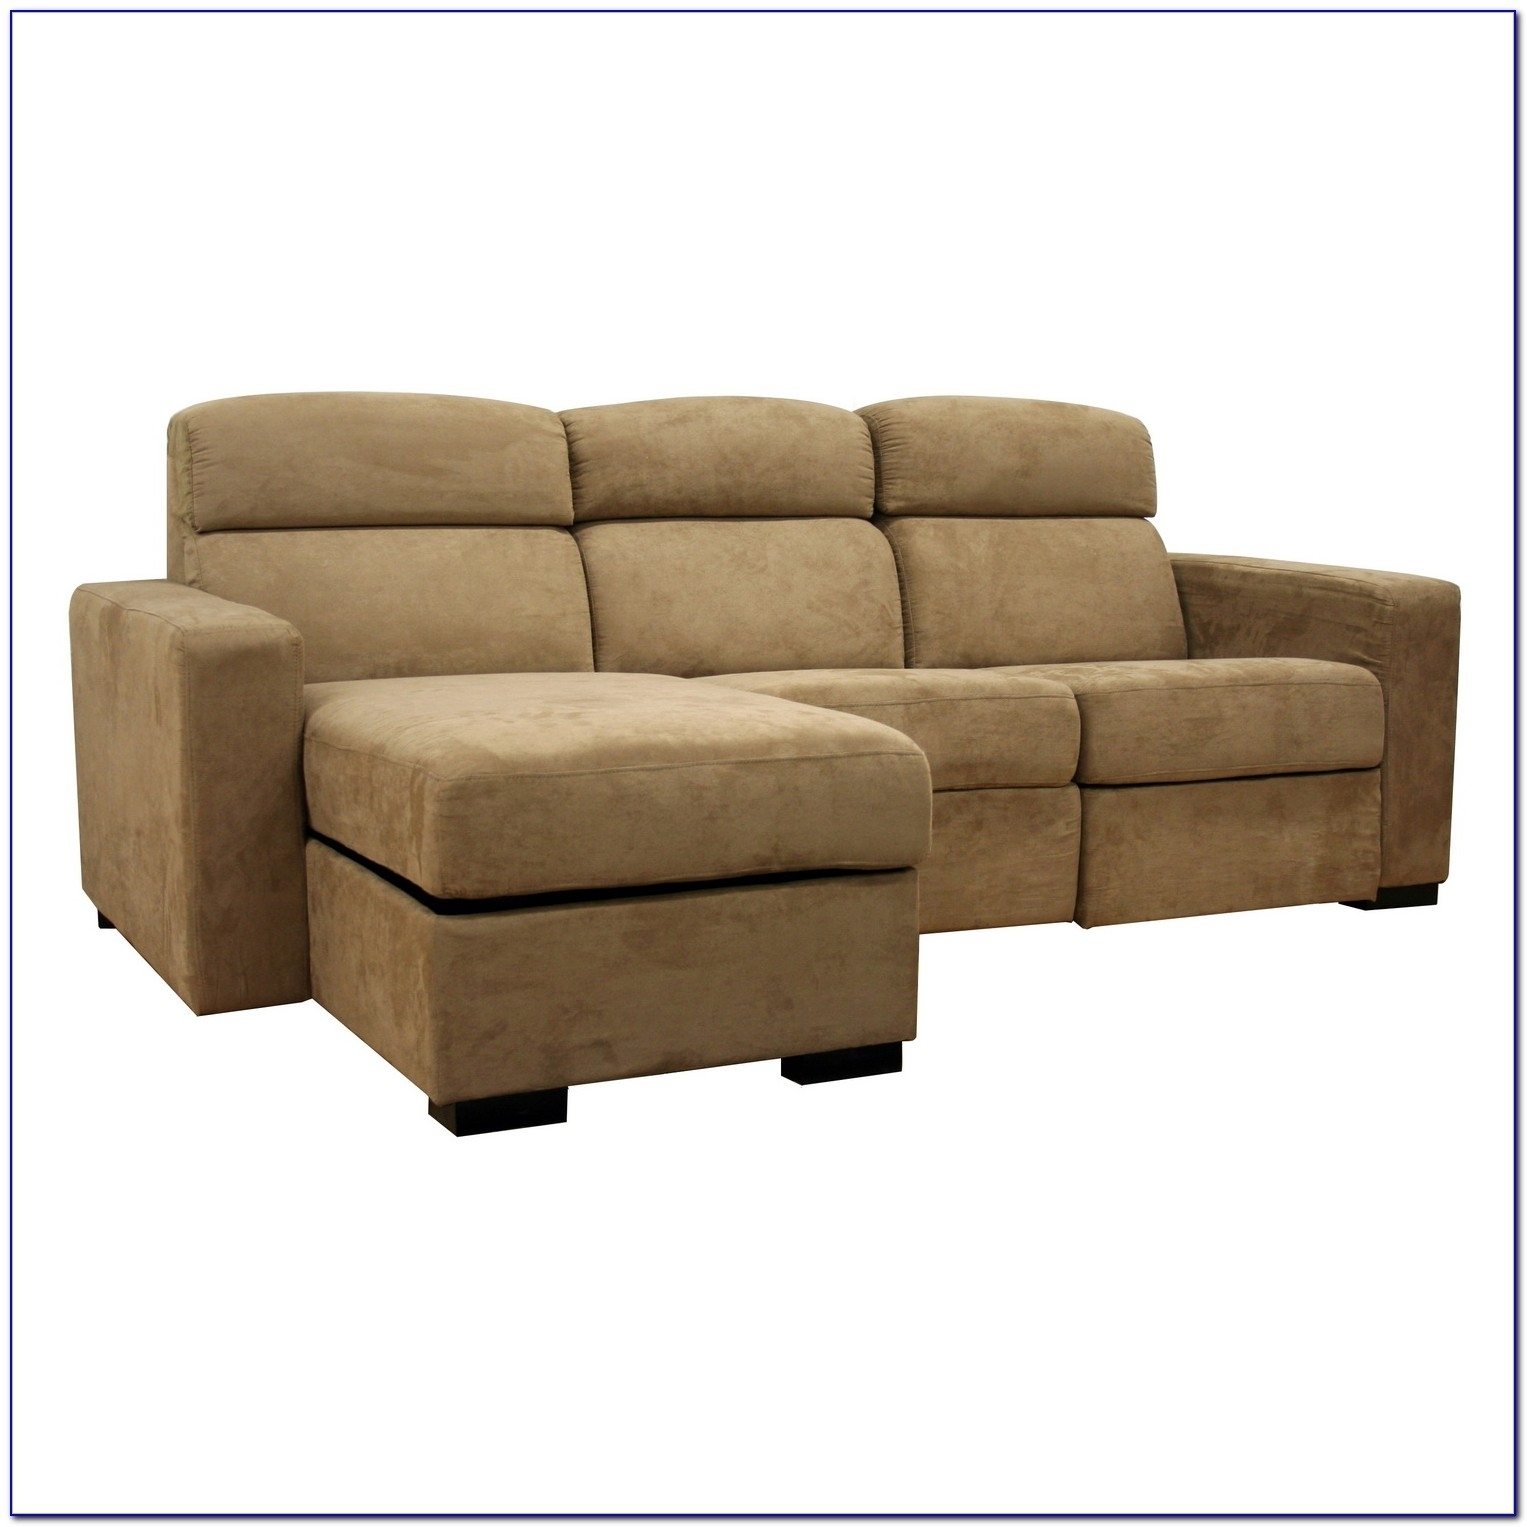 Bowen Sectional Sleeper Sofa With Left Side Chaise Lounge | Http Intended For Salt Lake City Sectional Sofas (View 2 of 10)